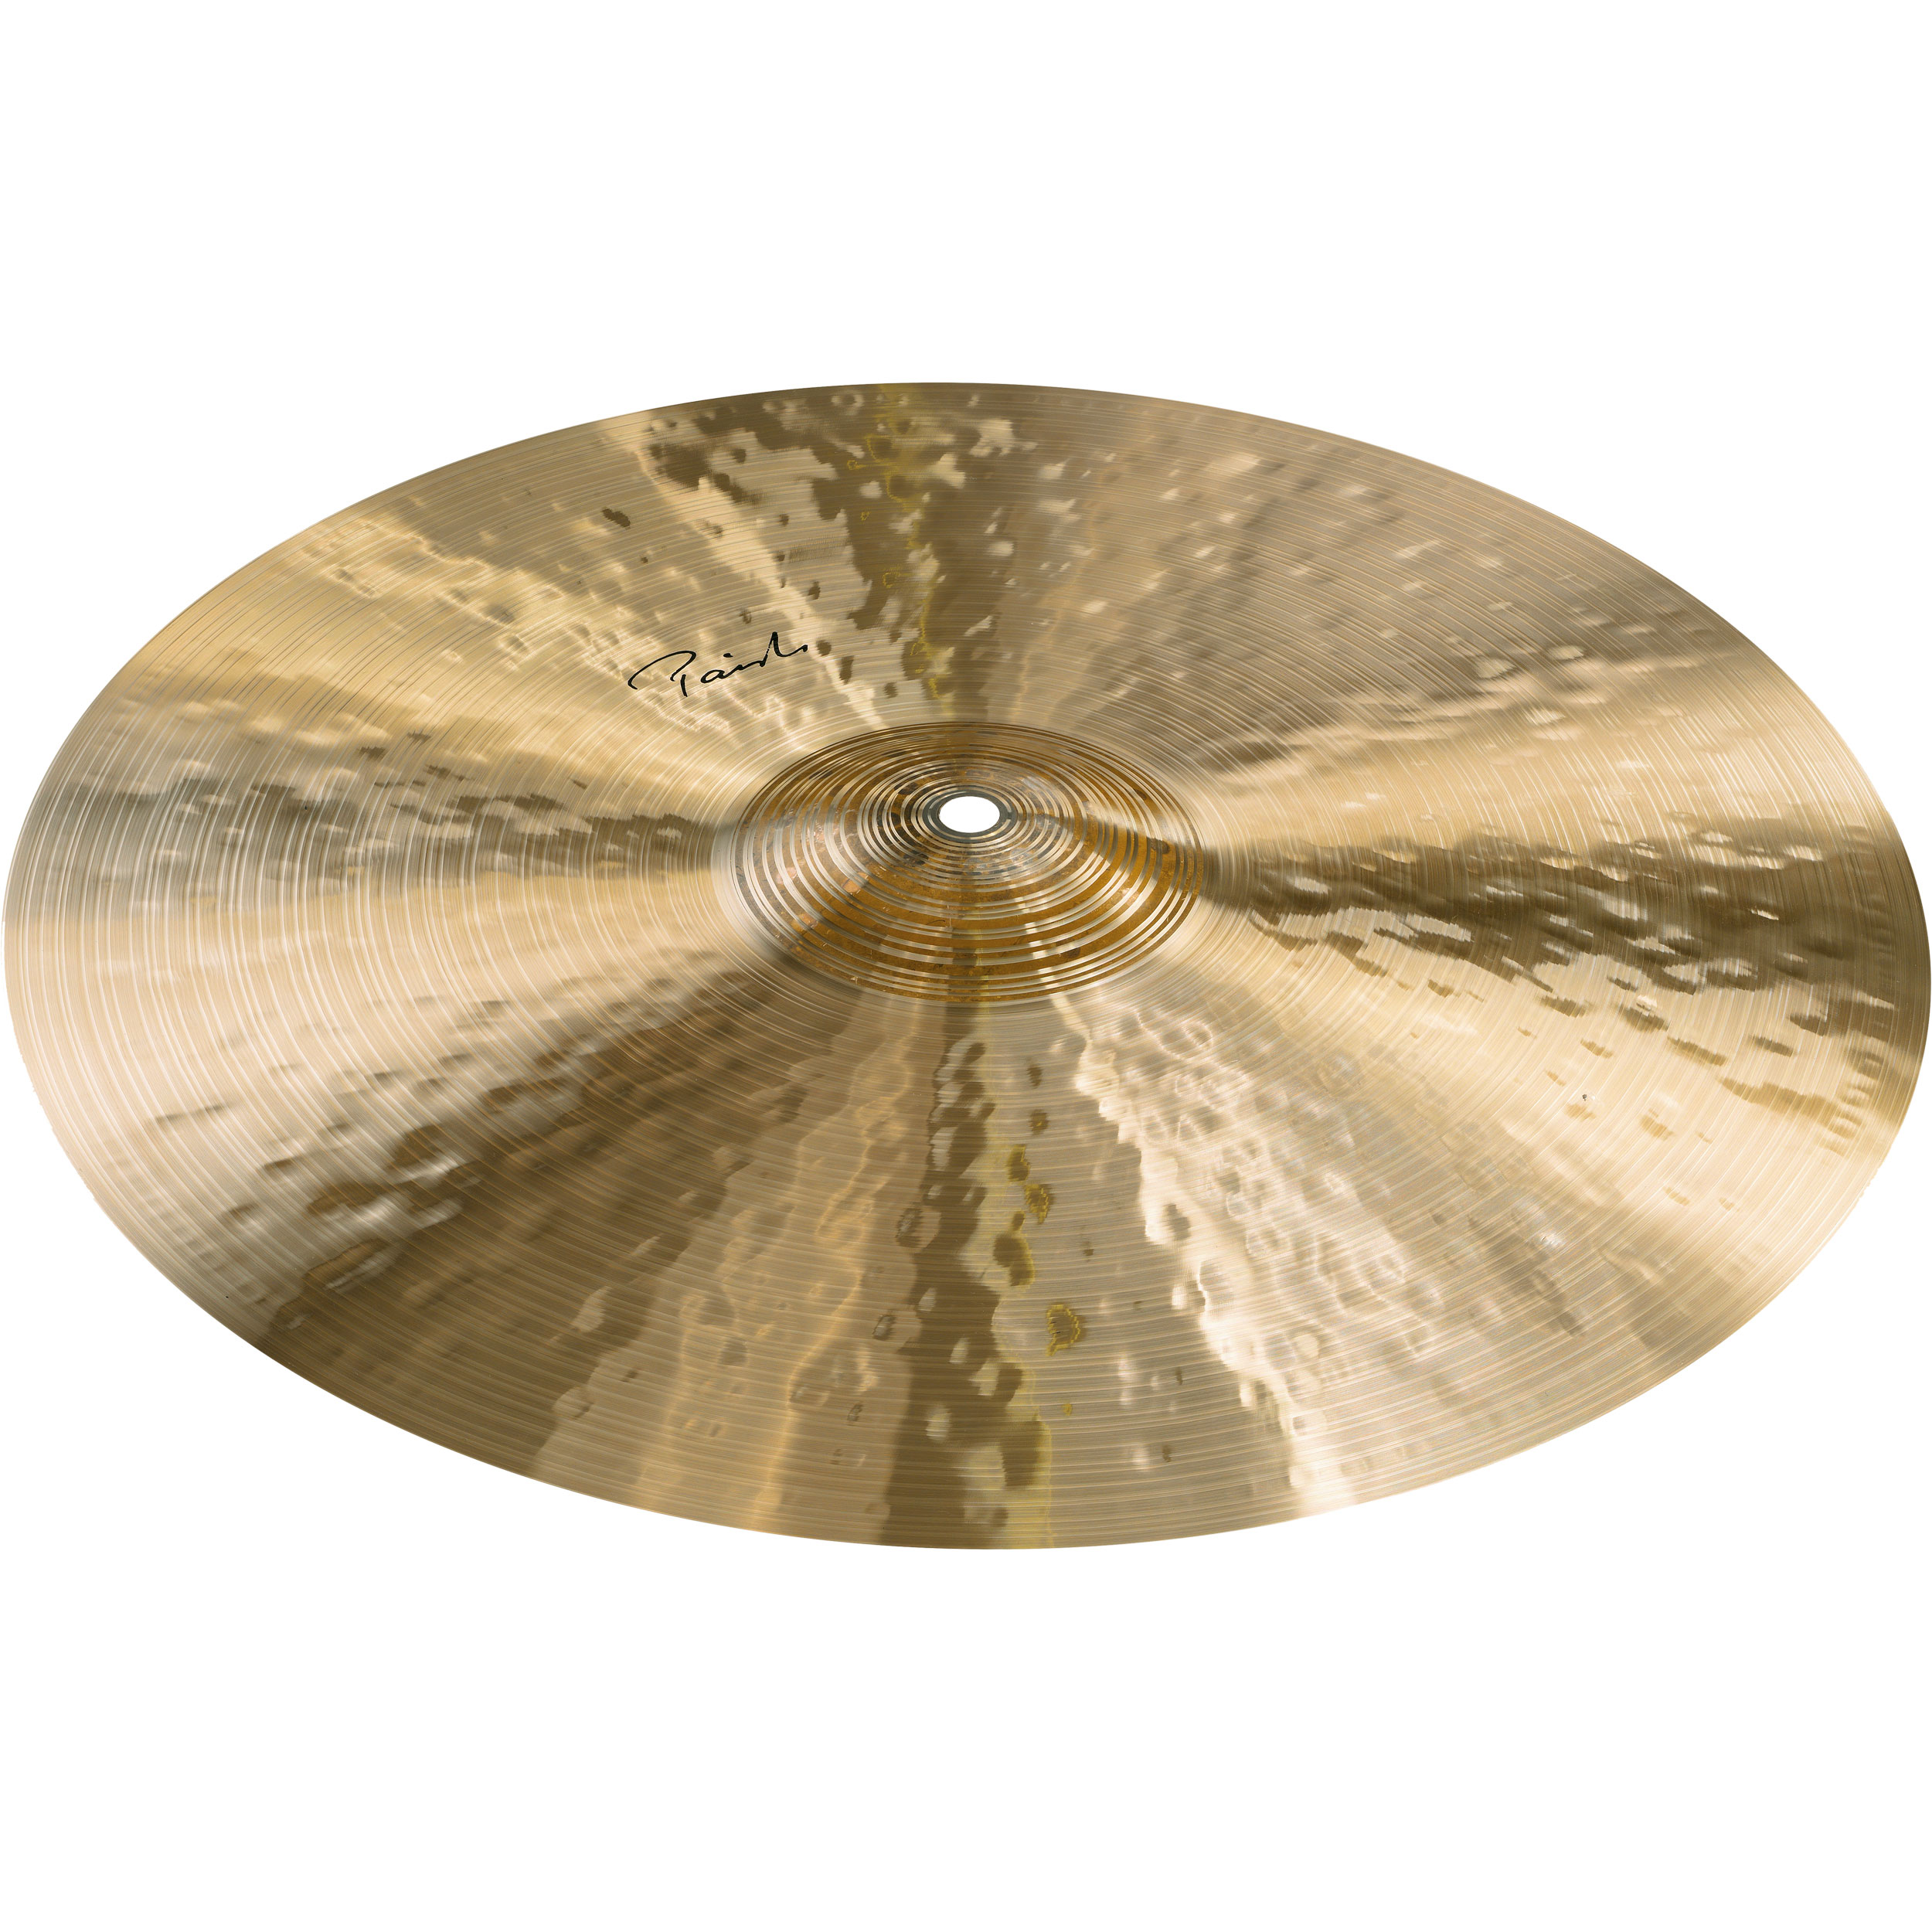 "Paiste 17"" Signature Traditionals Thin Crash Cymbal"